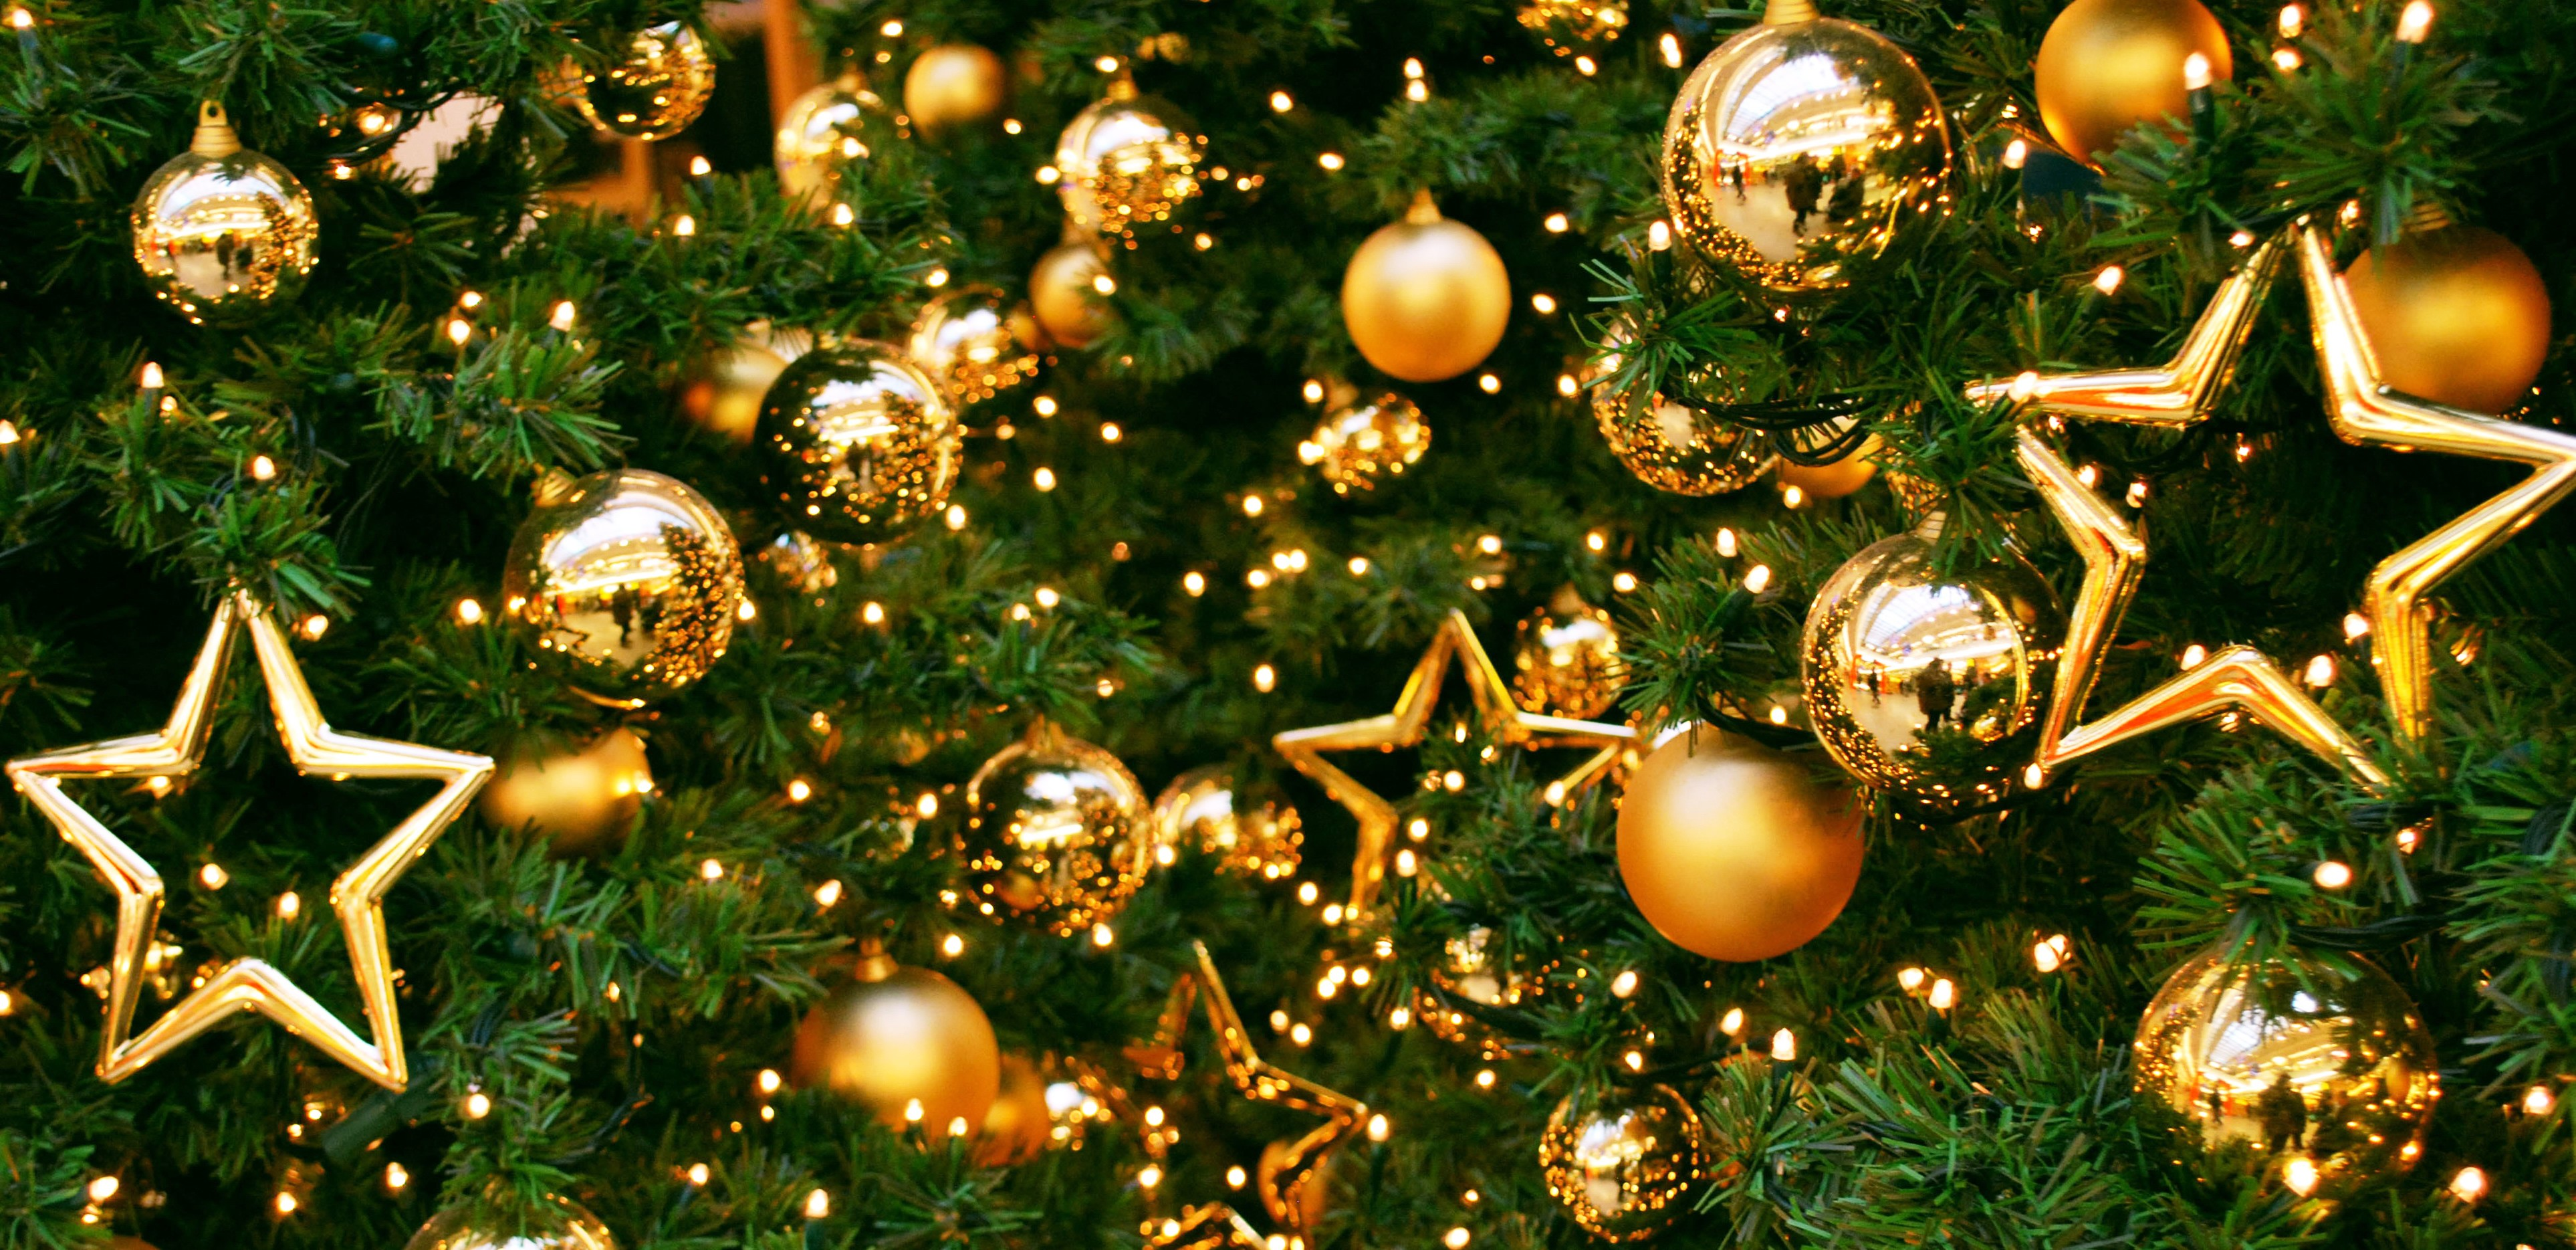 3853x1869 textures new year christmas texture christmas and new year tree texture background